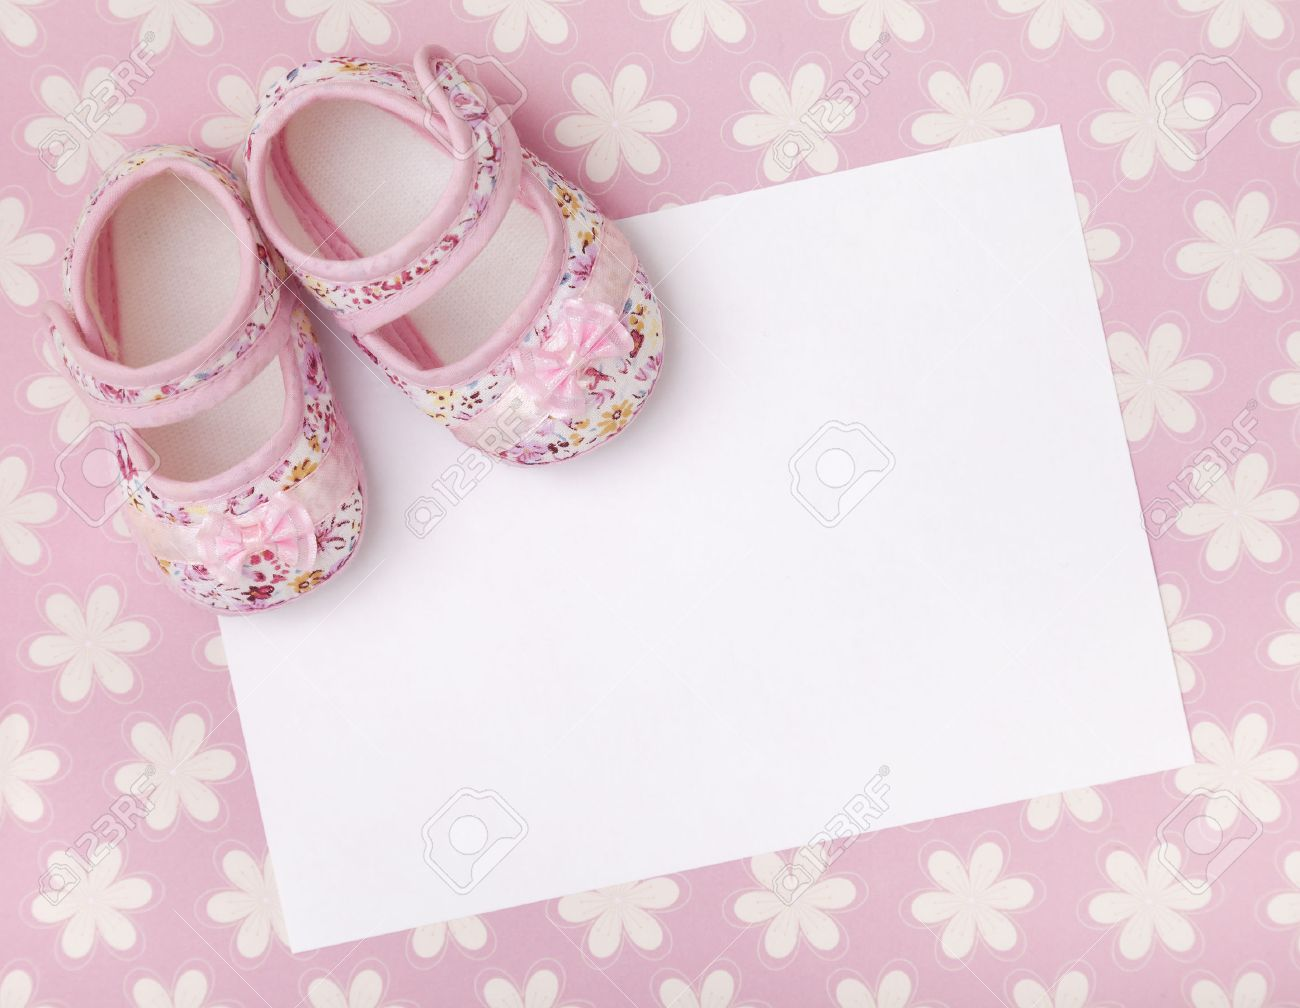 95b5b8c4398f Blank card with baby girl shoes on a pastel pink floral background. Stock  Photo